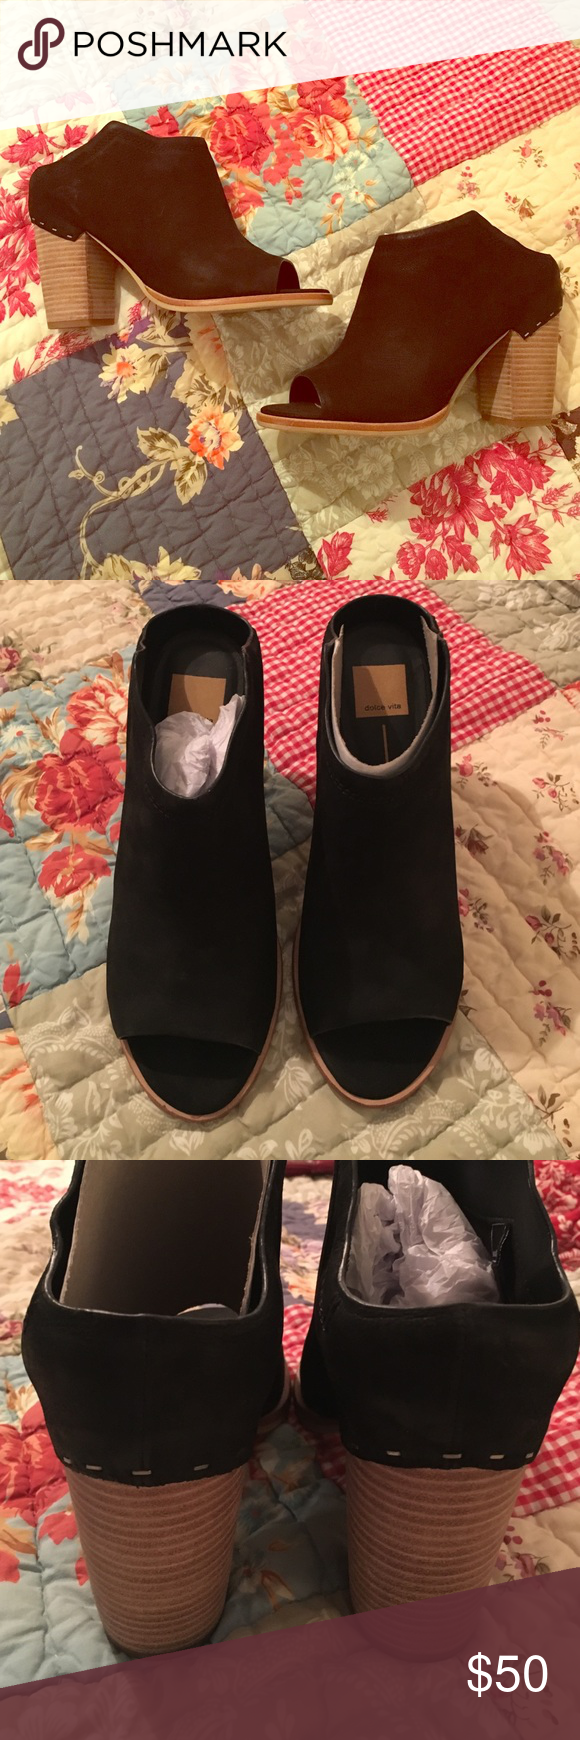 Dolce Vita black suede mules size 10 women's Brand new without box Dolce Vita open toed mules women's size 10 Dolce Vita Shoes Mules & Clogs